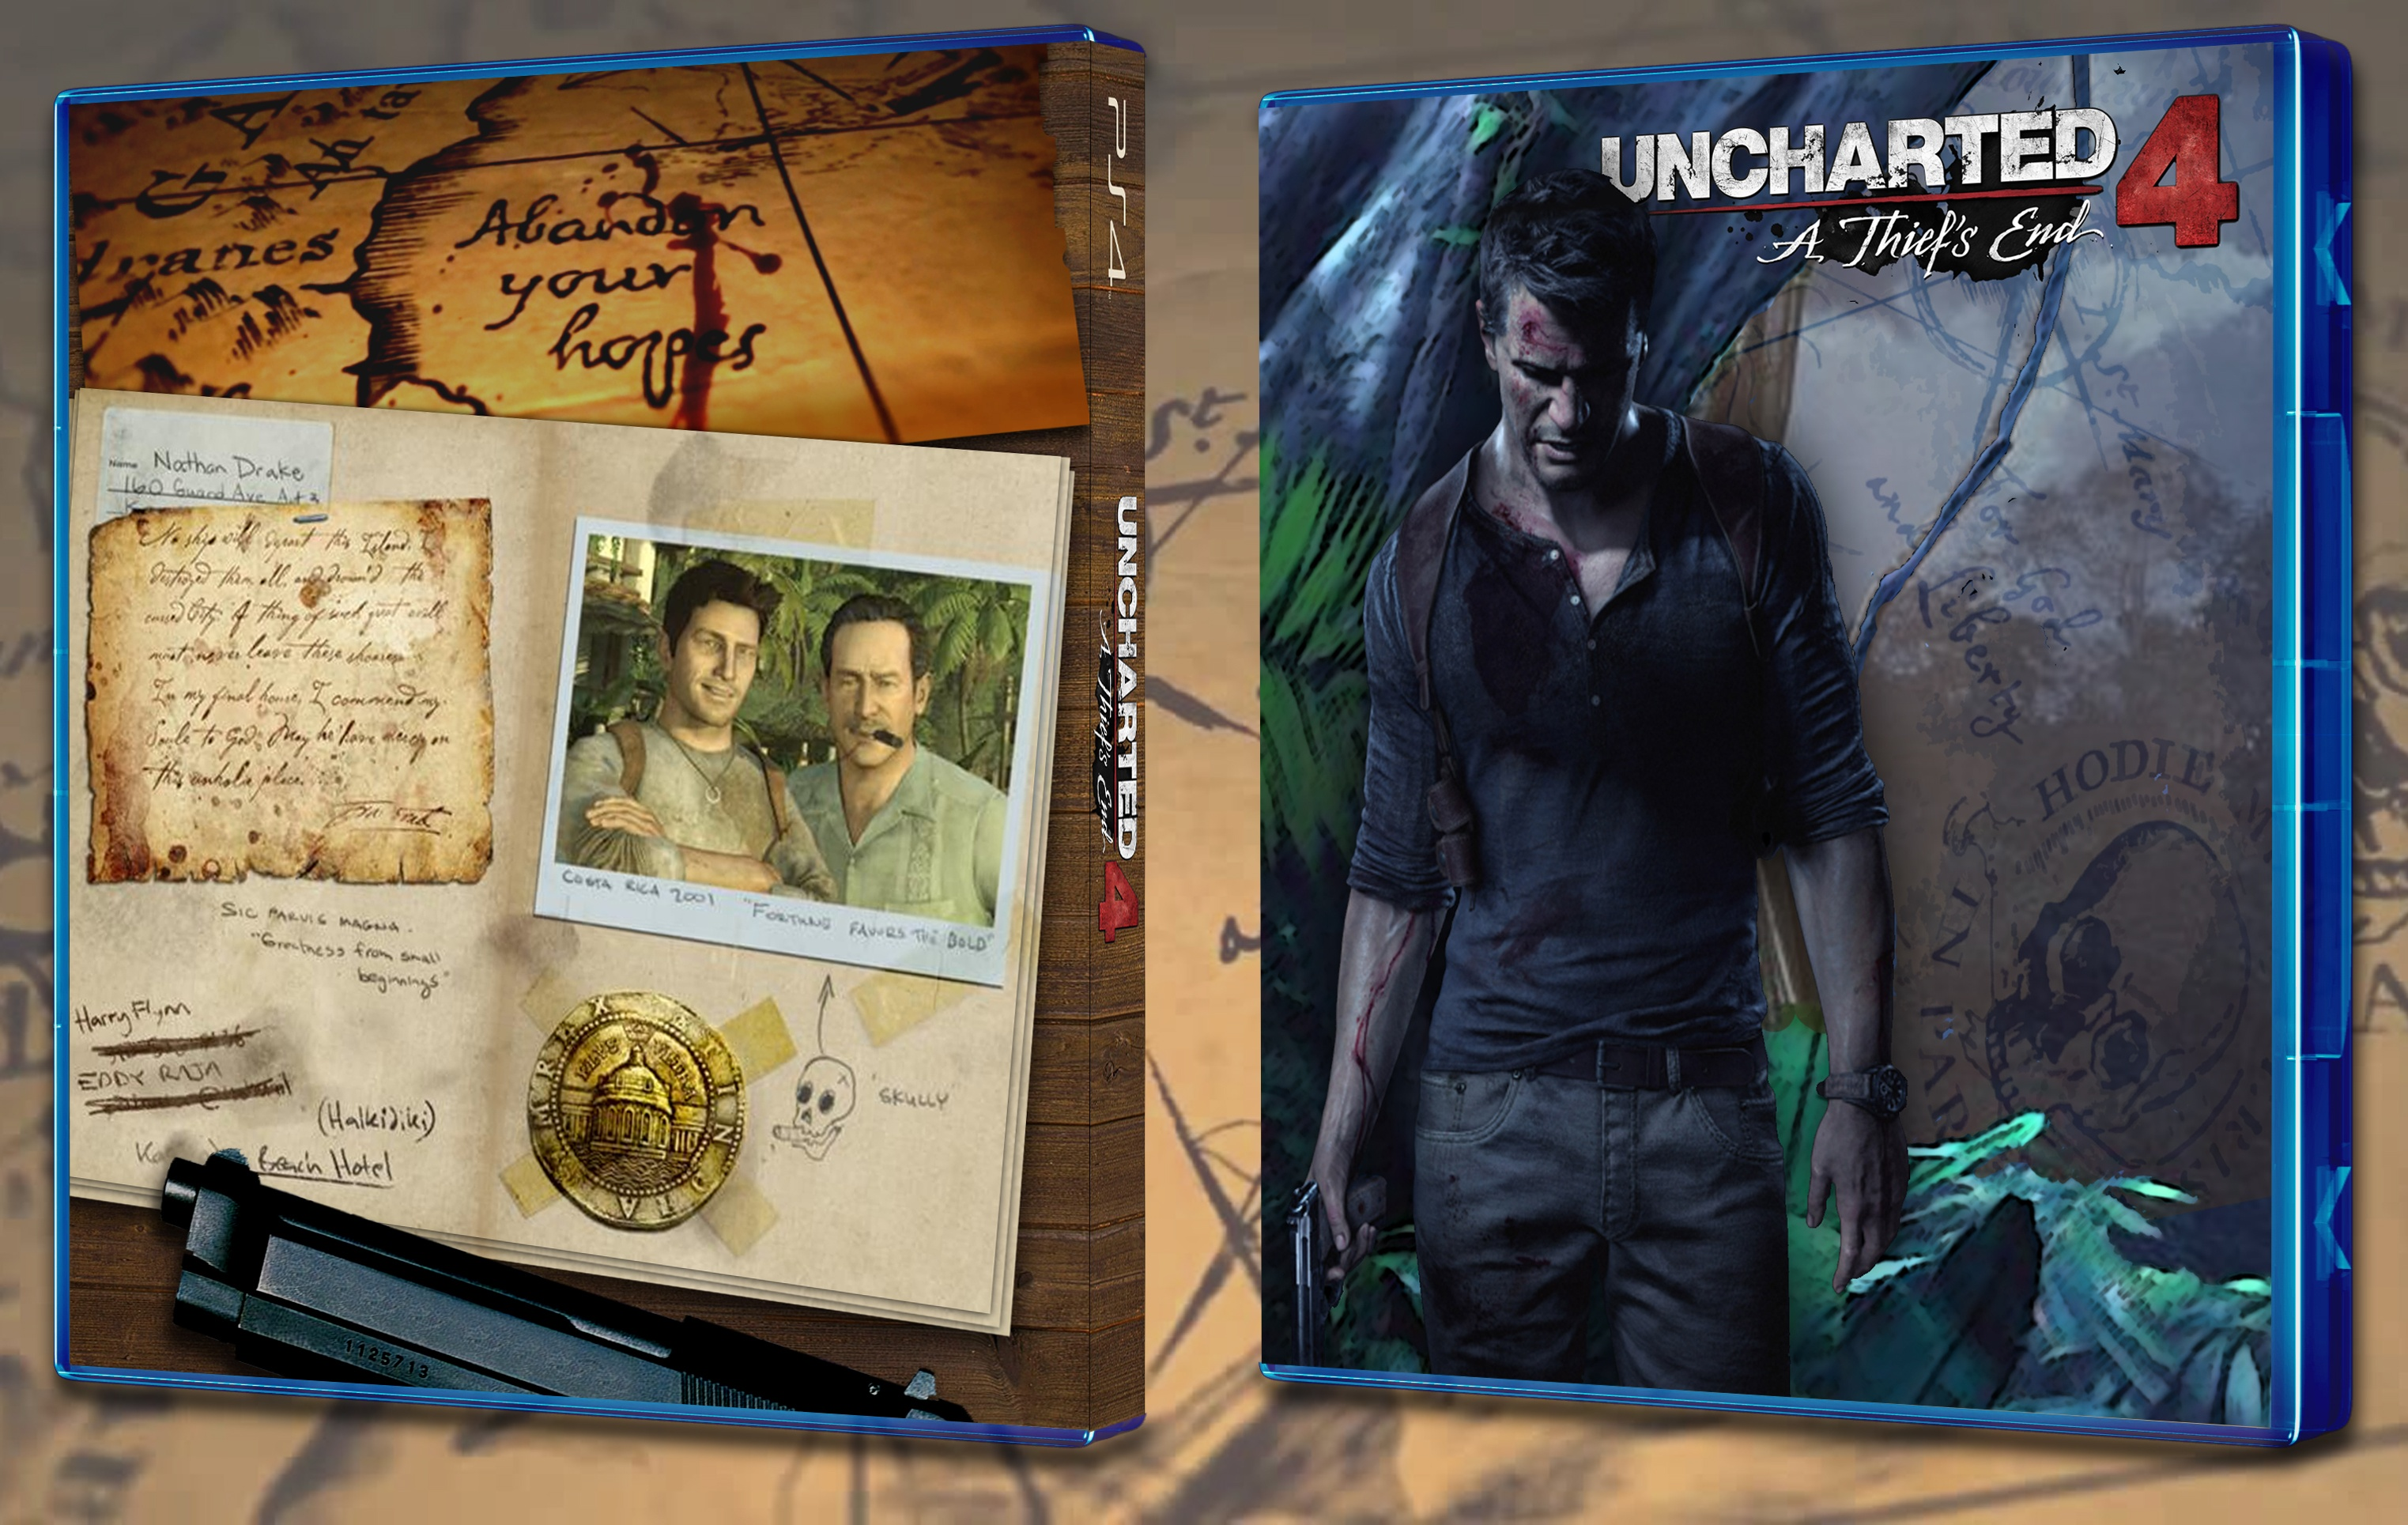 Uncharted 4: A Thief's End box cover